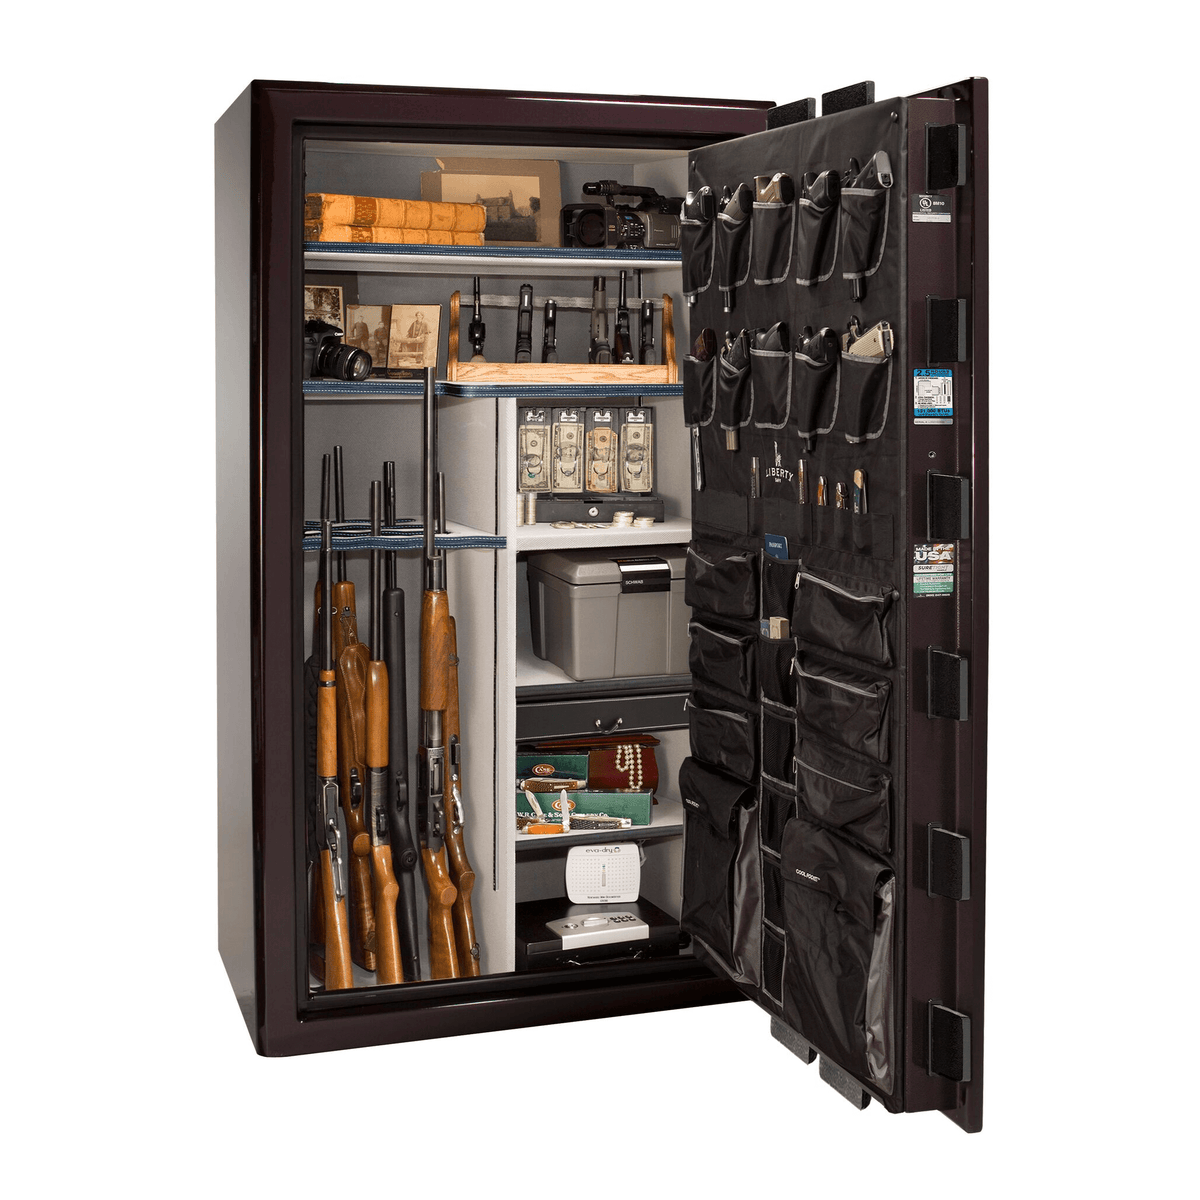 "Presidential | 50 | Level 8 Security | 150 Minute Fire Protection | Black Cherry Gloss | Black Electronic Lock | 72.5""(H) x 42""(W) x 32""(D)"